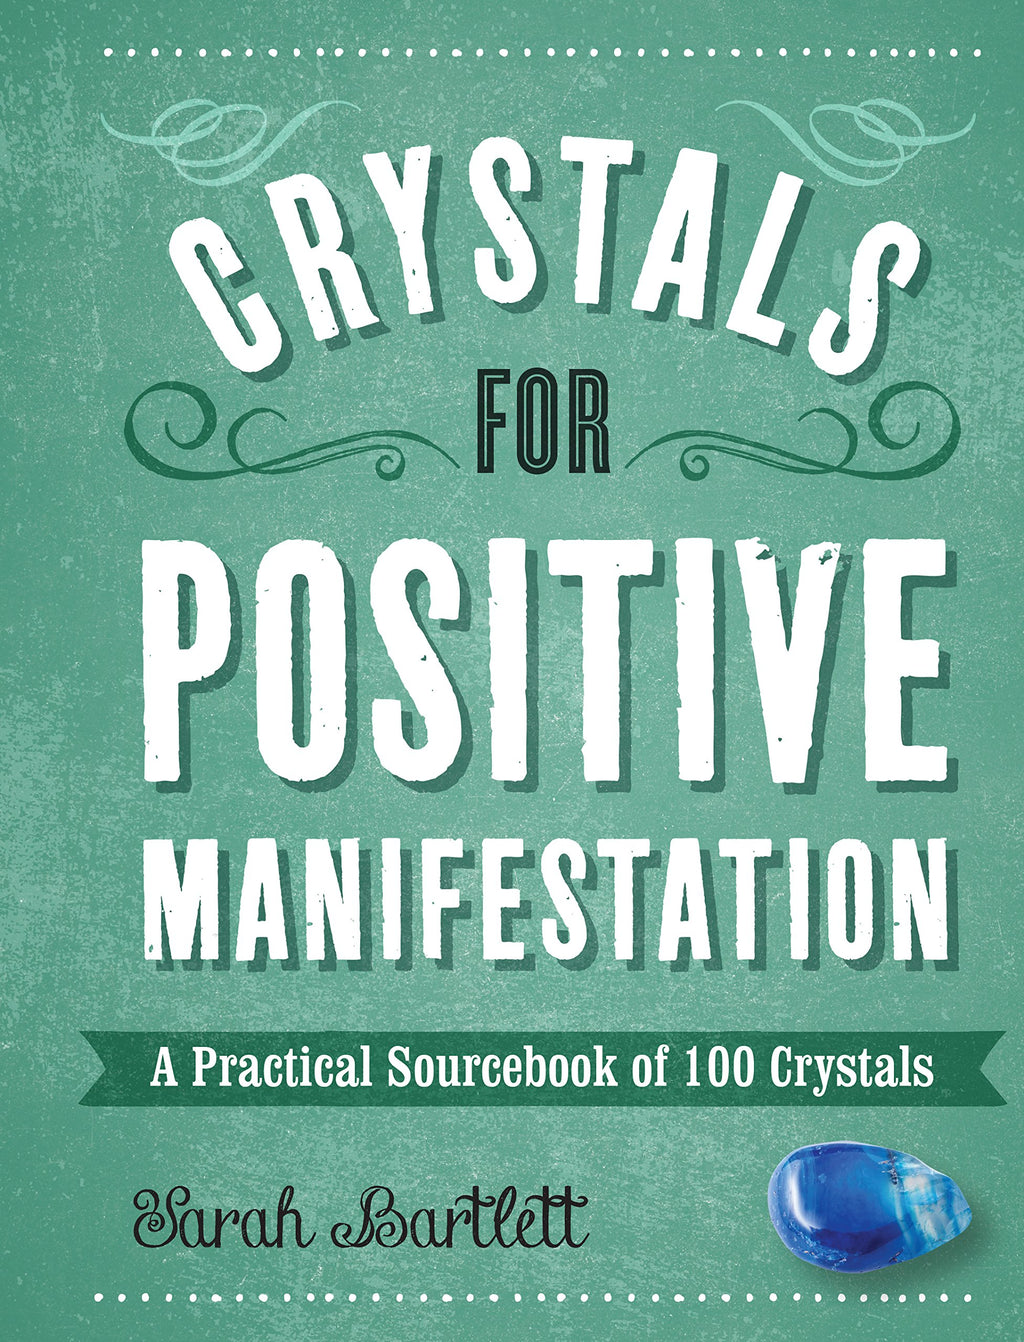 Crystals for Positive Manifestation by Sarah Bartlett